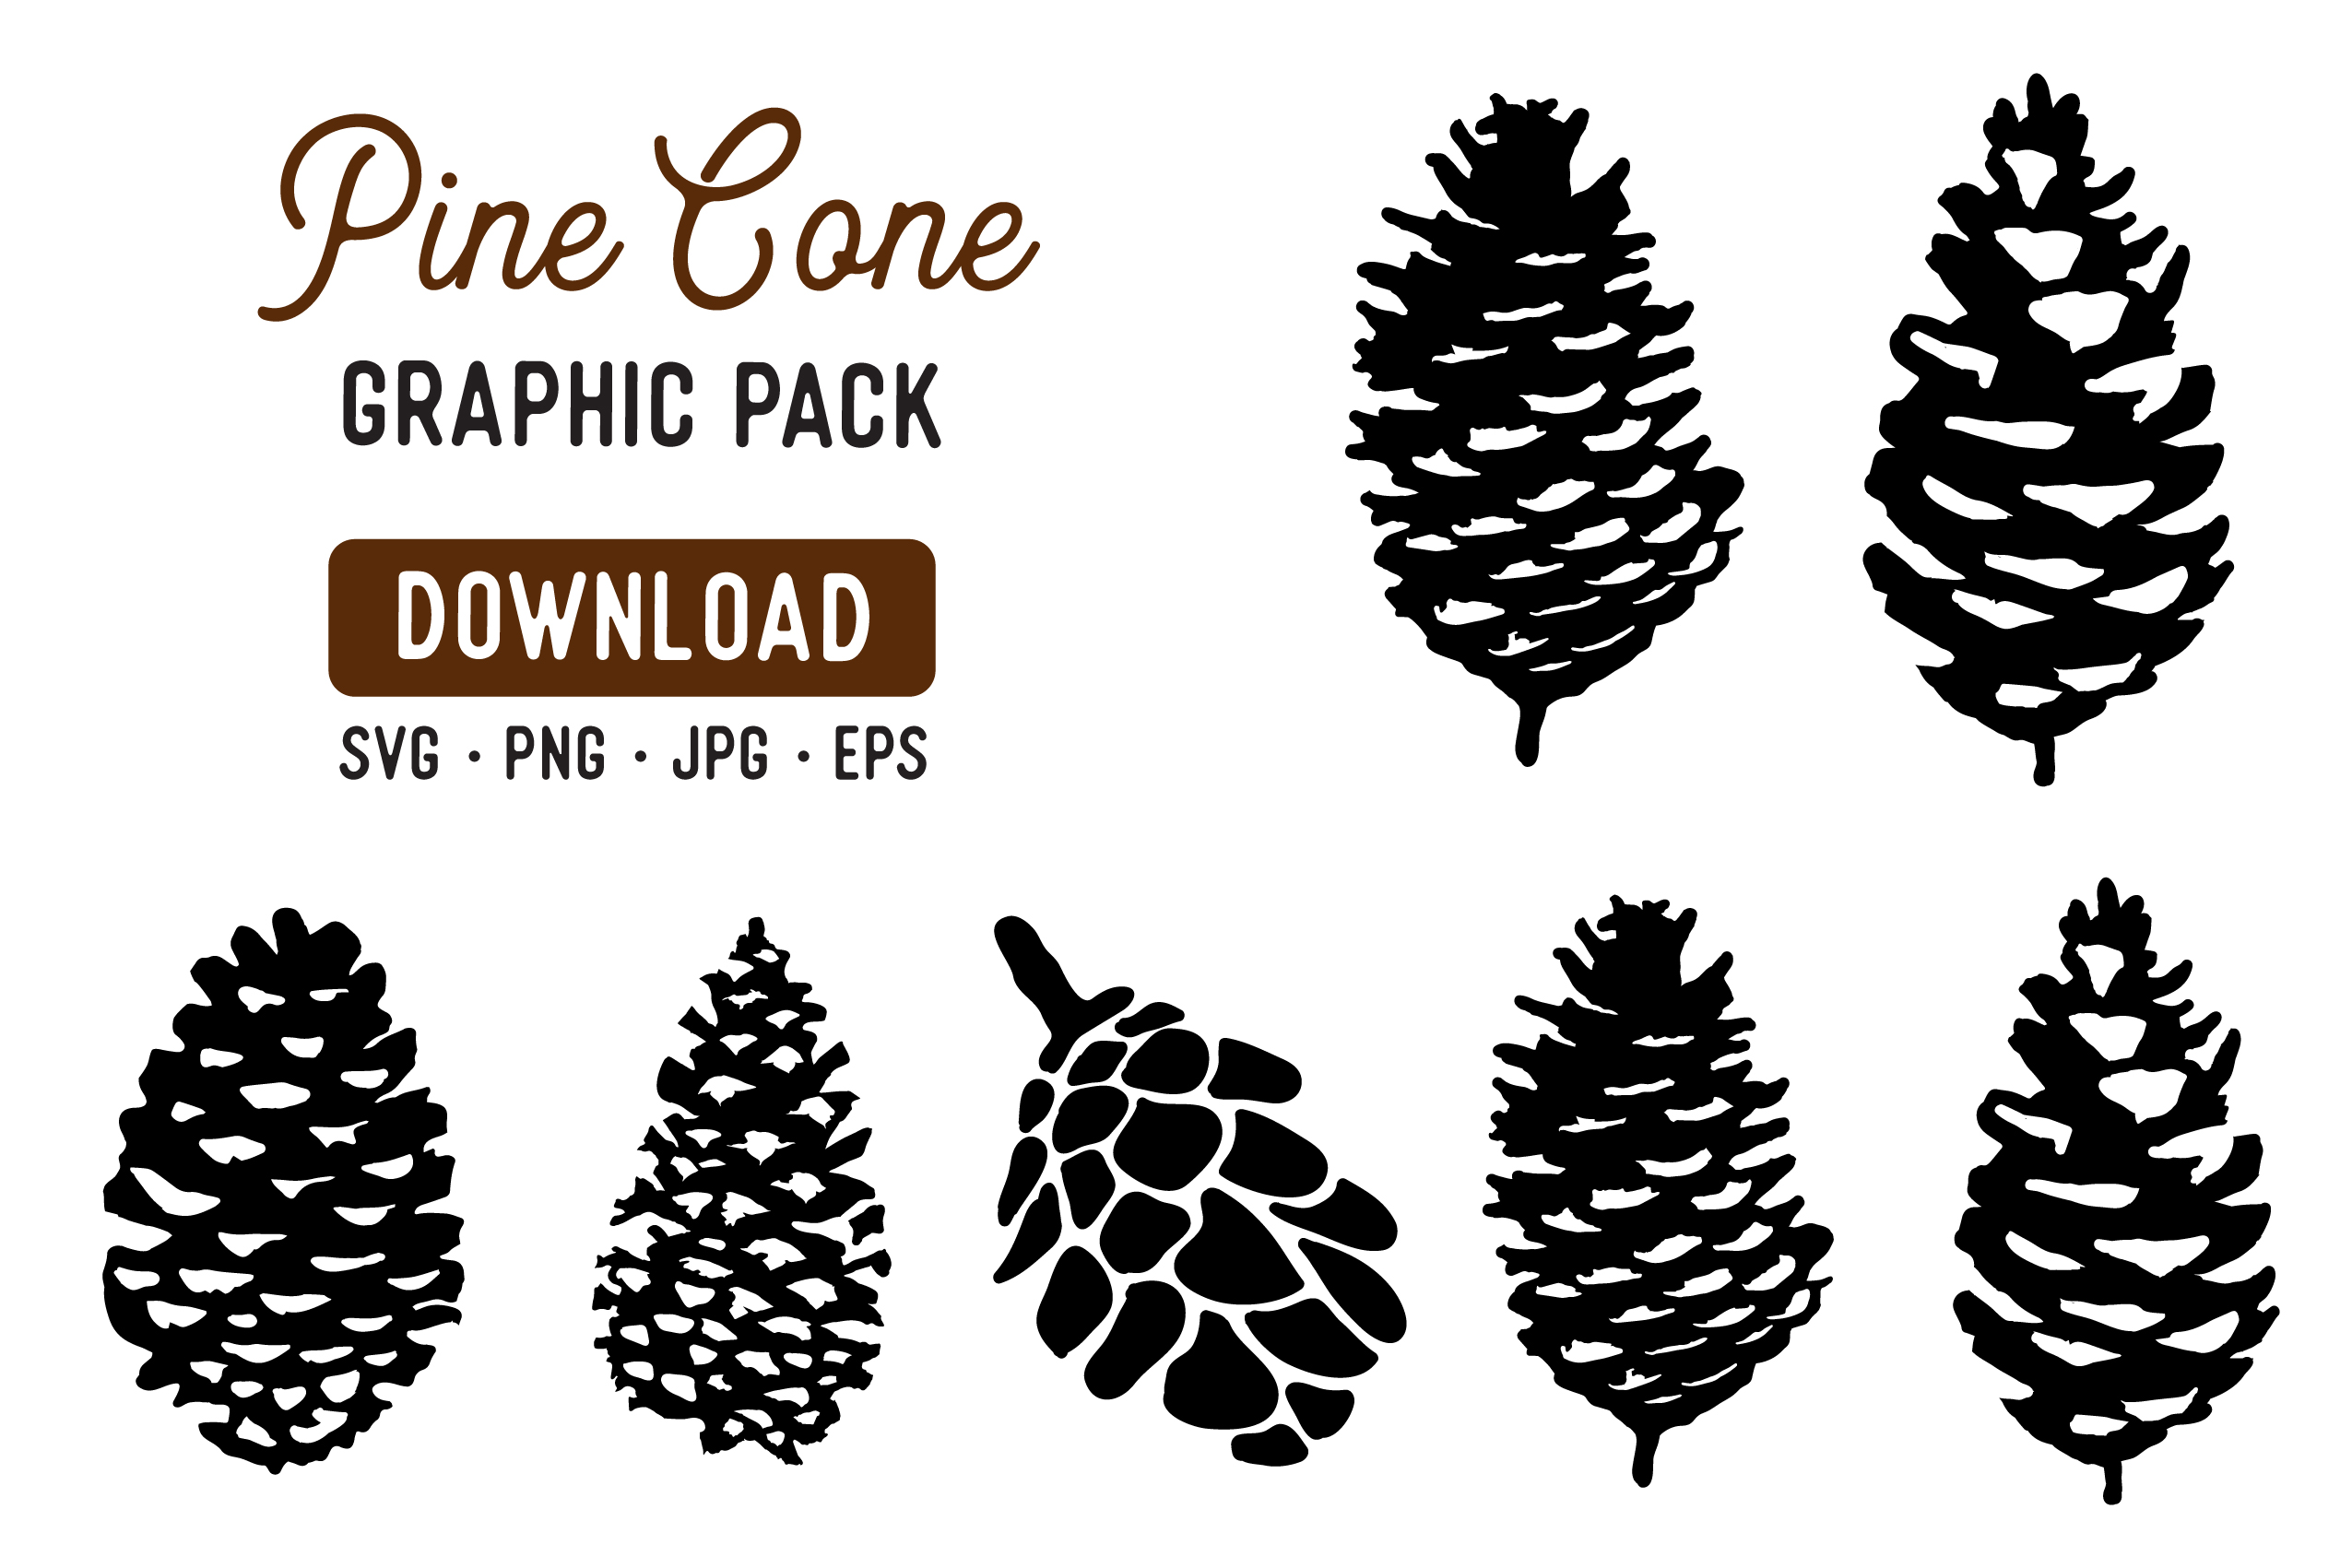 Download Free Pine Cone Stencil Graphic Pack Grafico Por The Gradient Fox for Cricut Explore, Silhouette and other cutting machines.